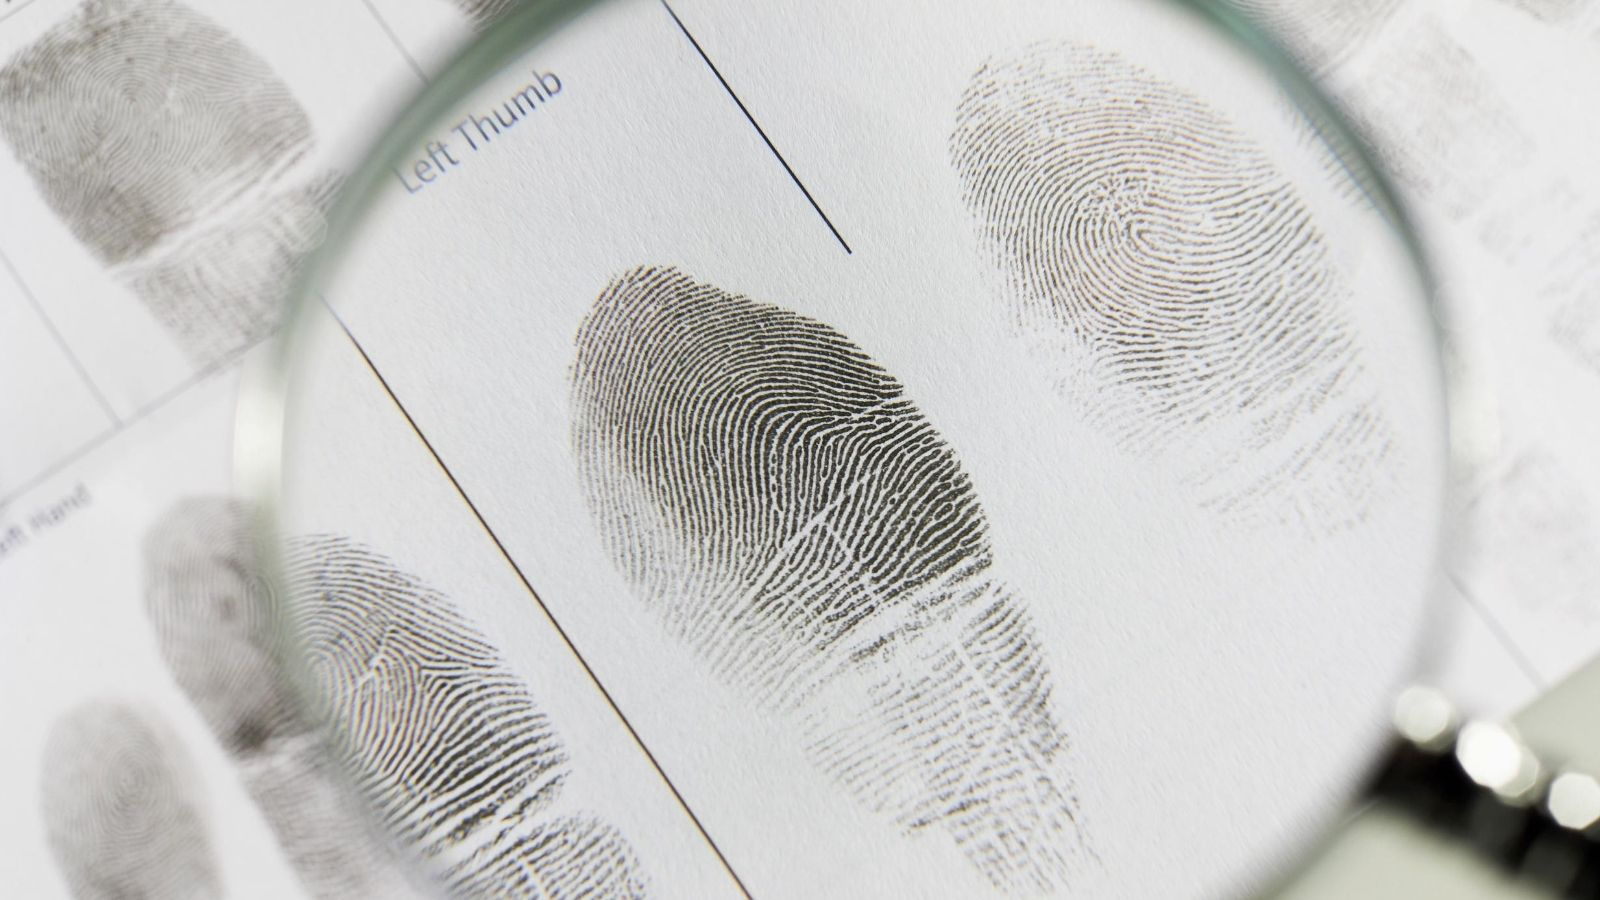 nbi clearance fingerprint abroad